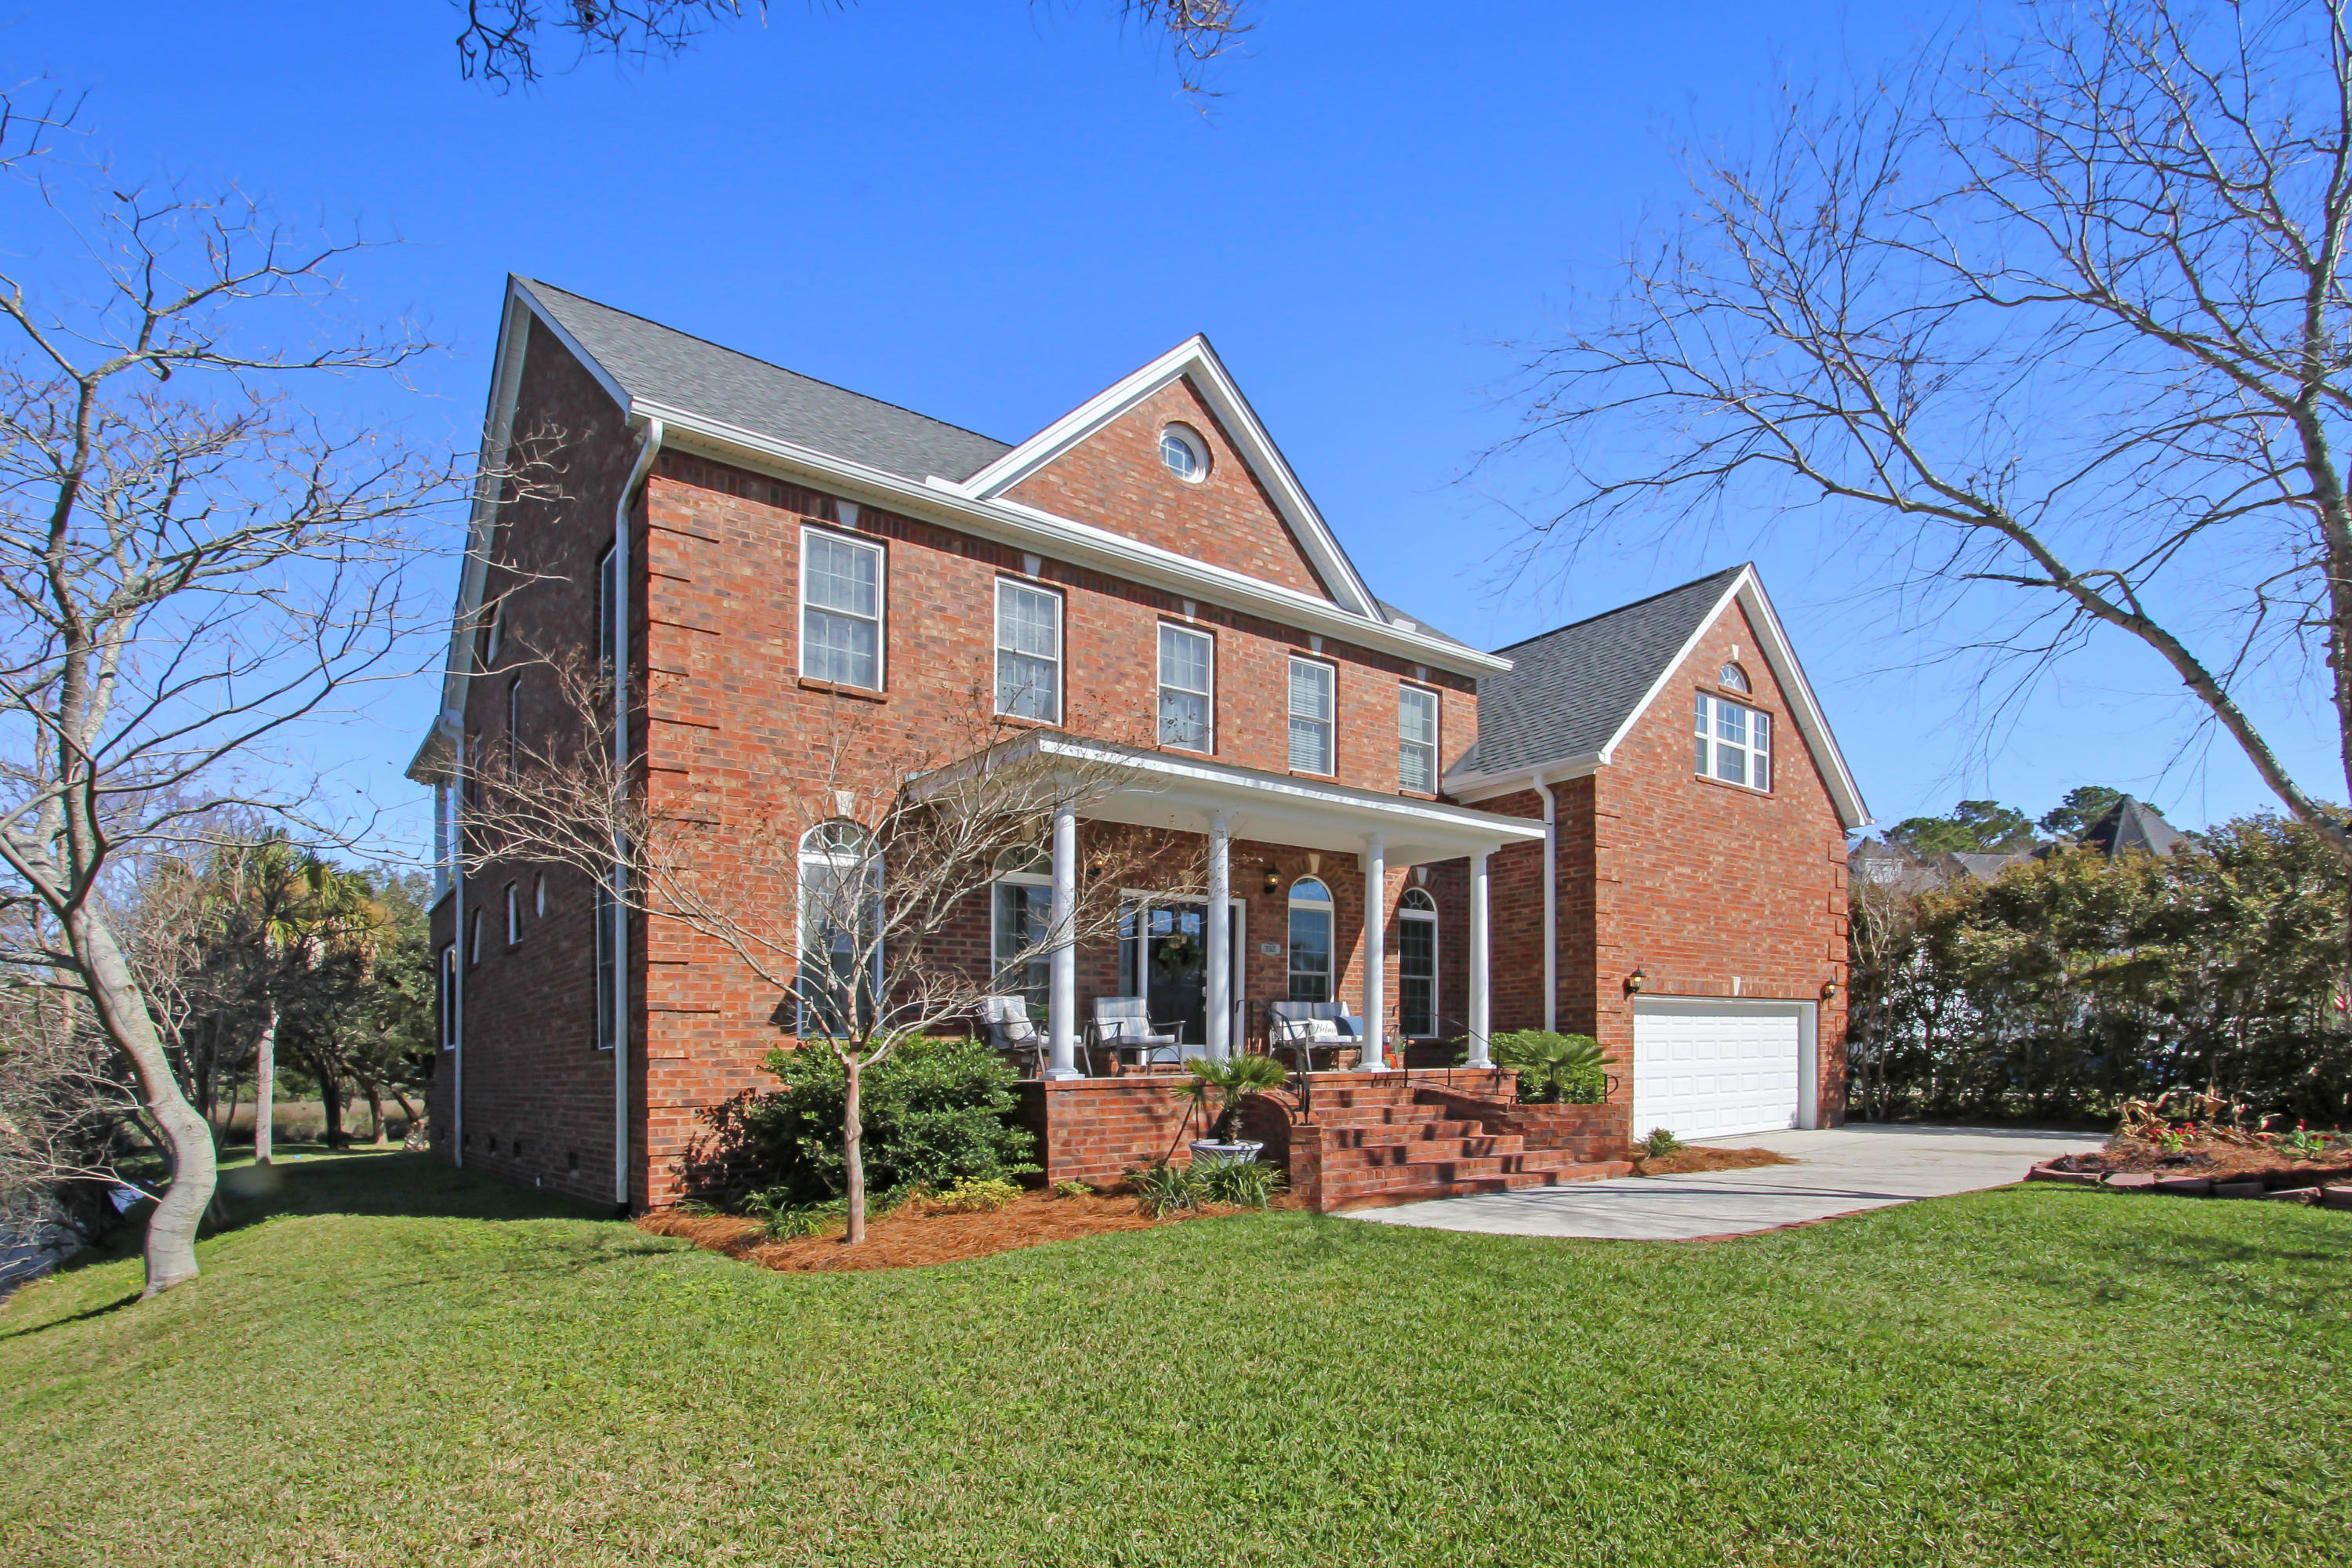 Belle Hall Homes For Sale - 752 High Battery, Mount Pleasant, SC - 4